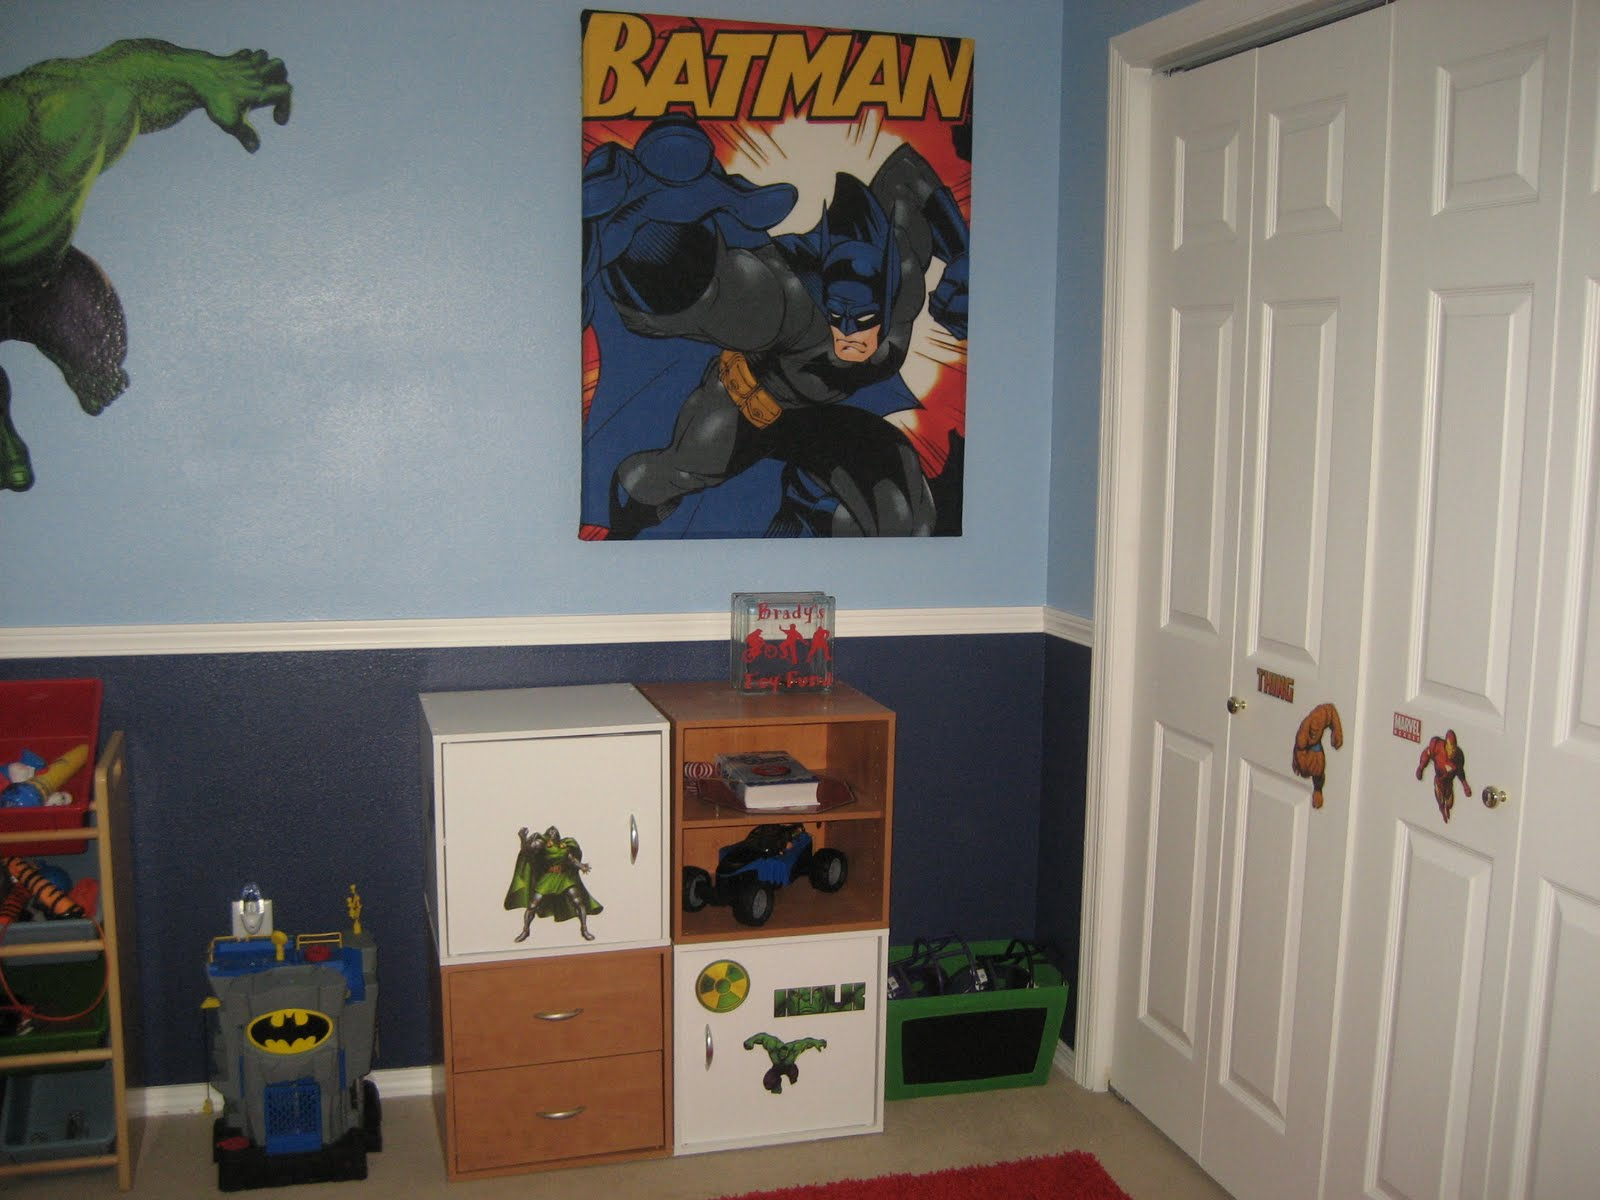 Incredible Hulk Wall Stickers Cindy S Vinyl Creations Super Hero Room Finished